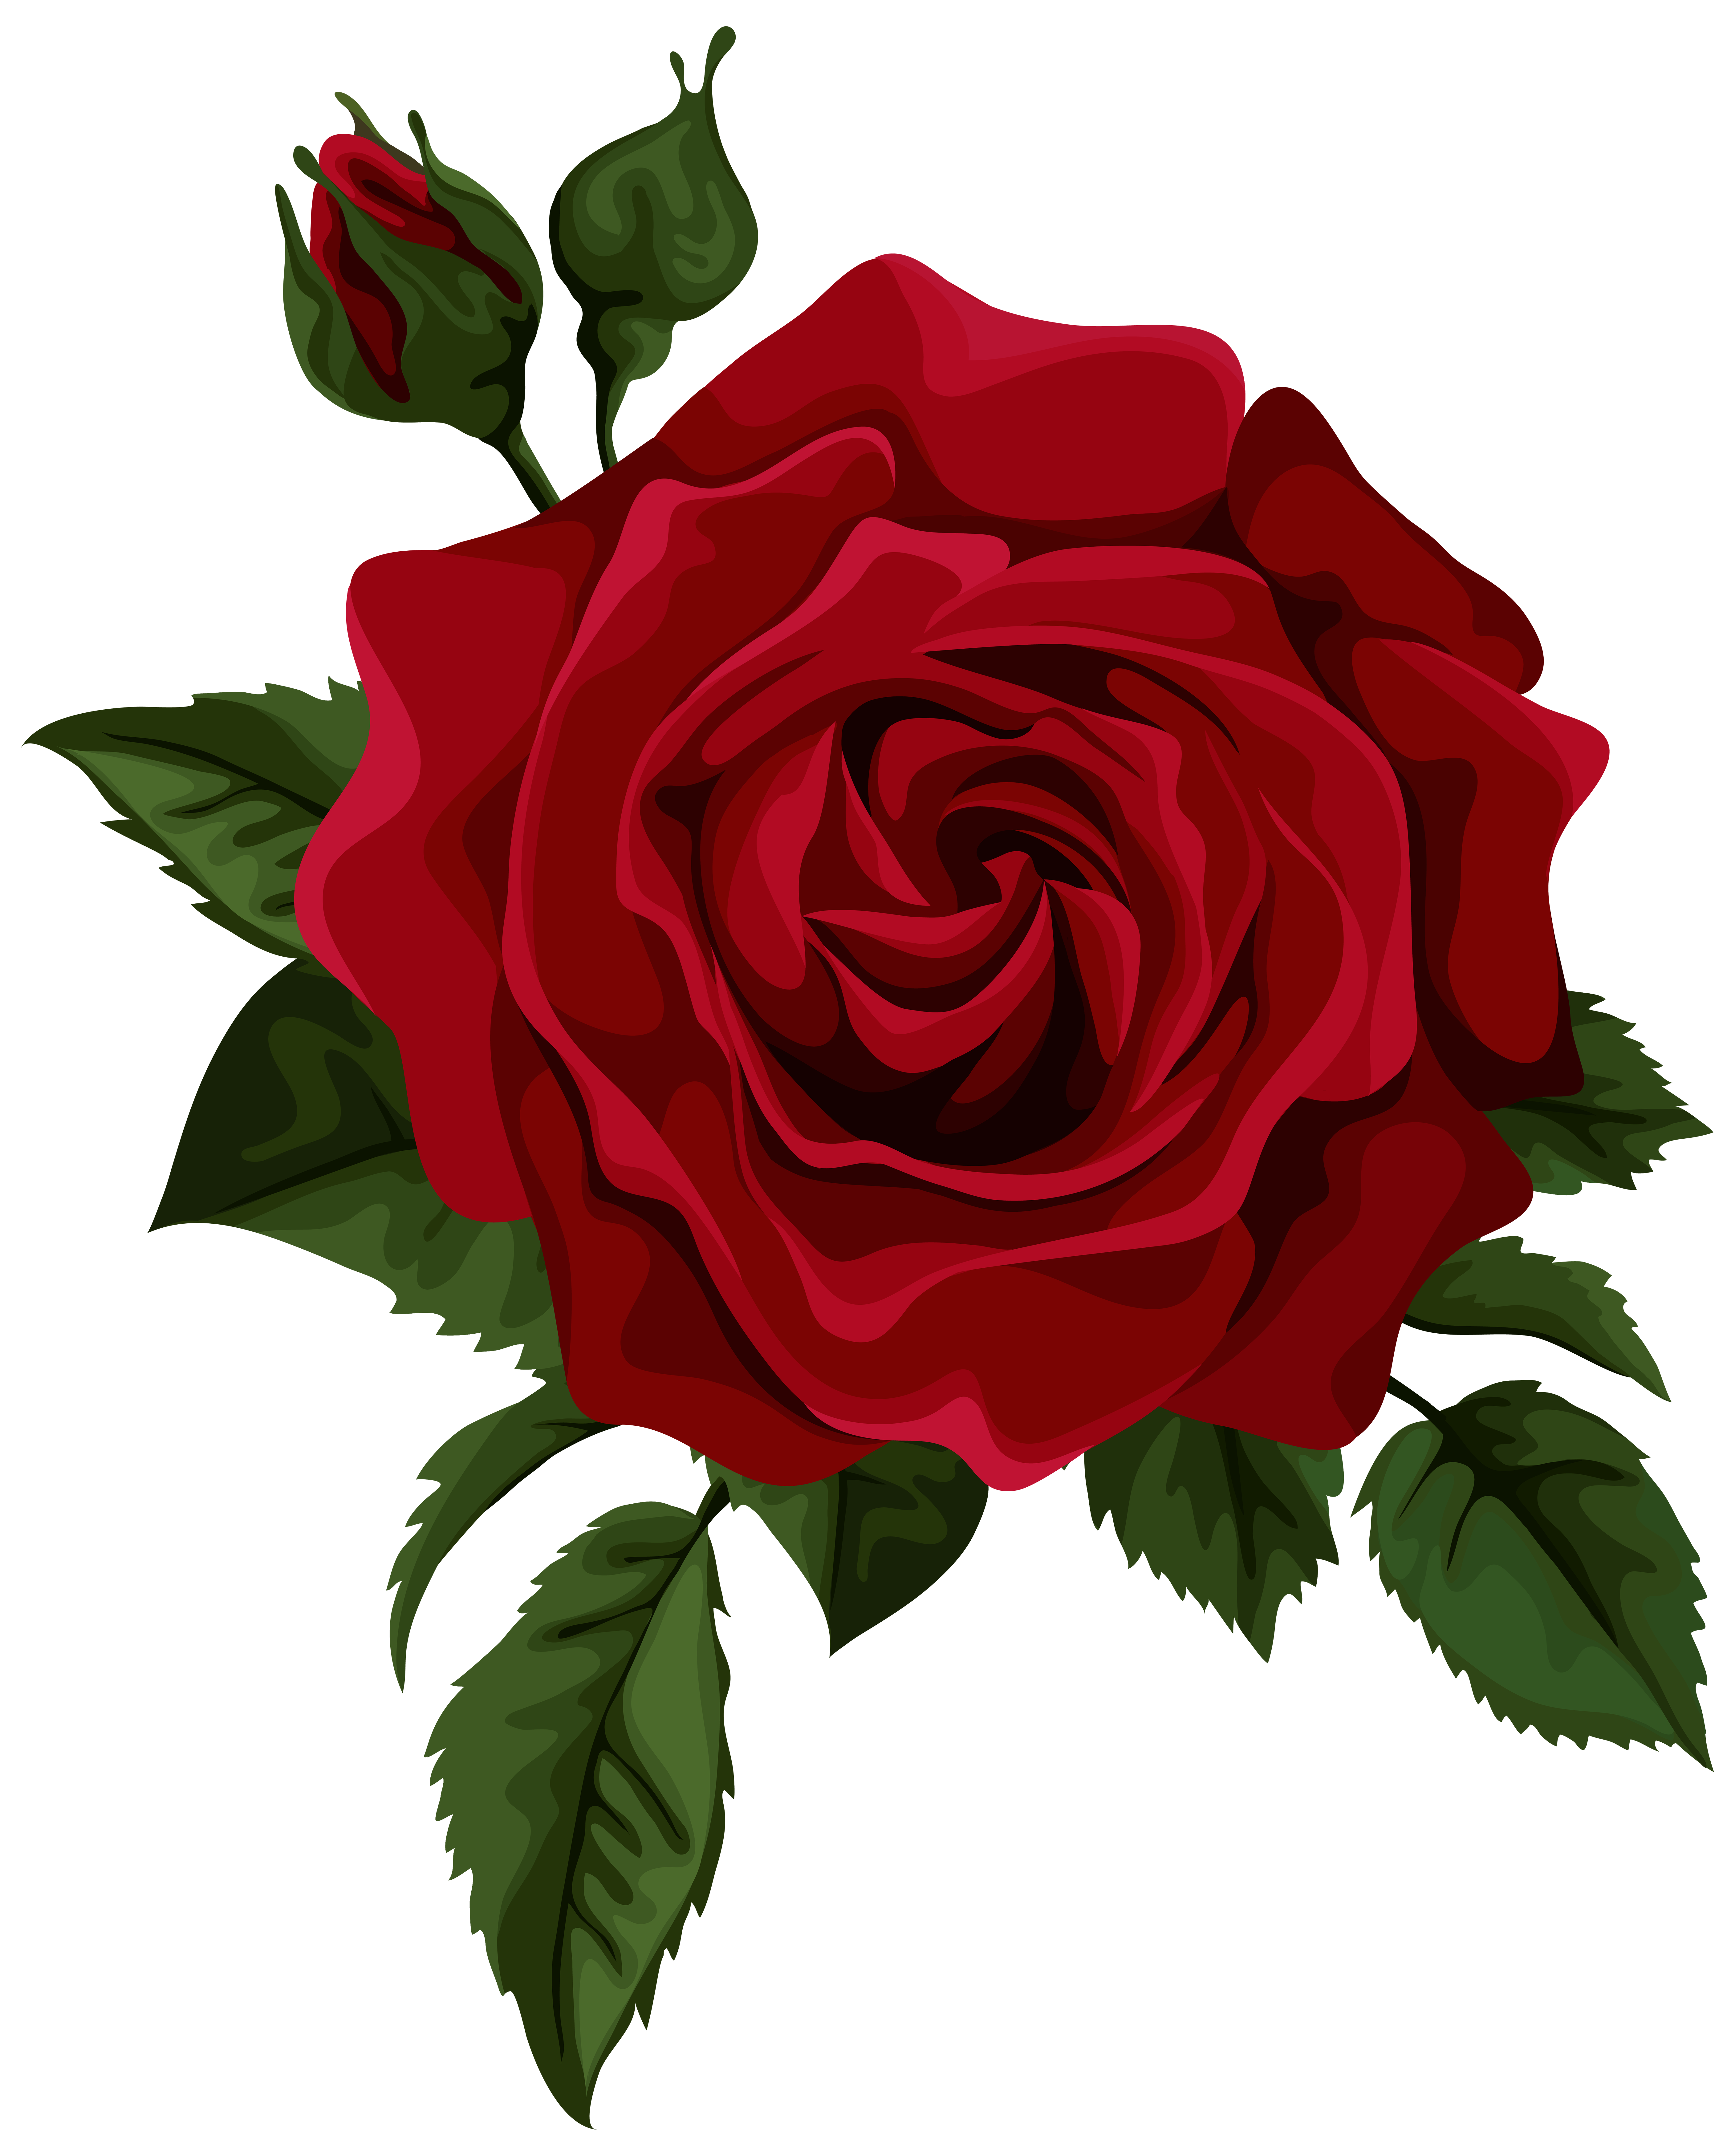 Rose with thorns png. Roses red bud transparent